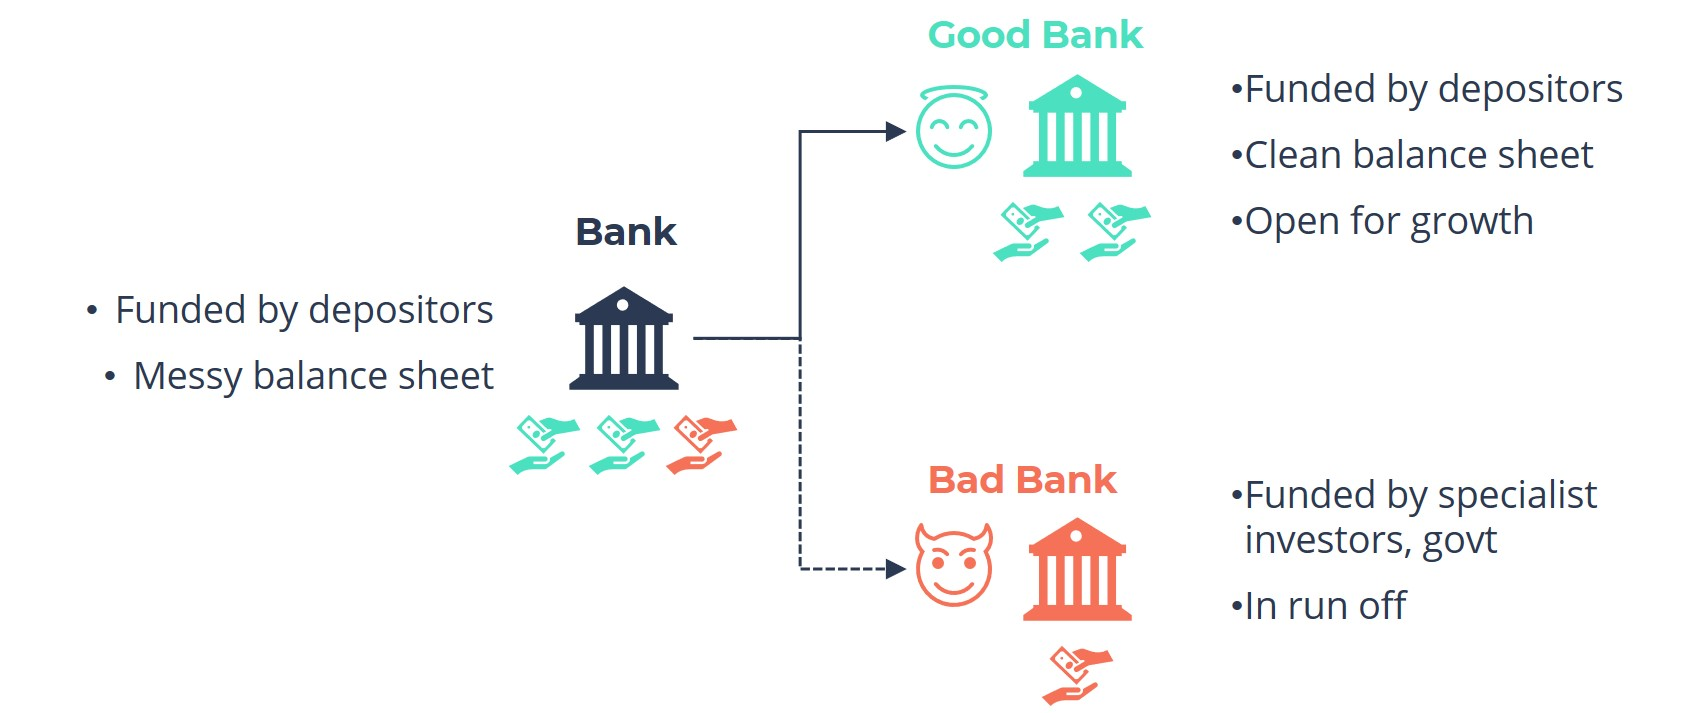 Difference between a Bad Bank and a Good Bank